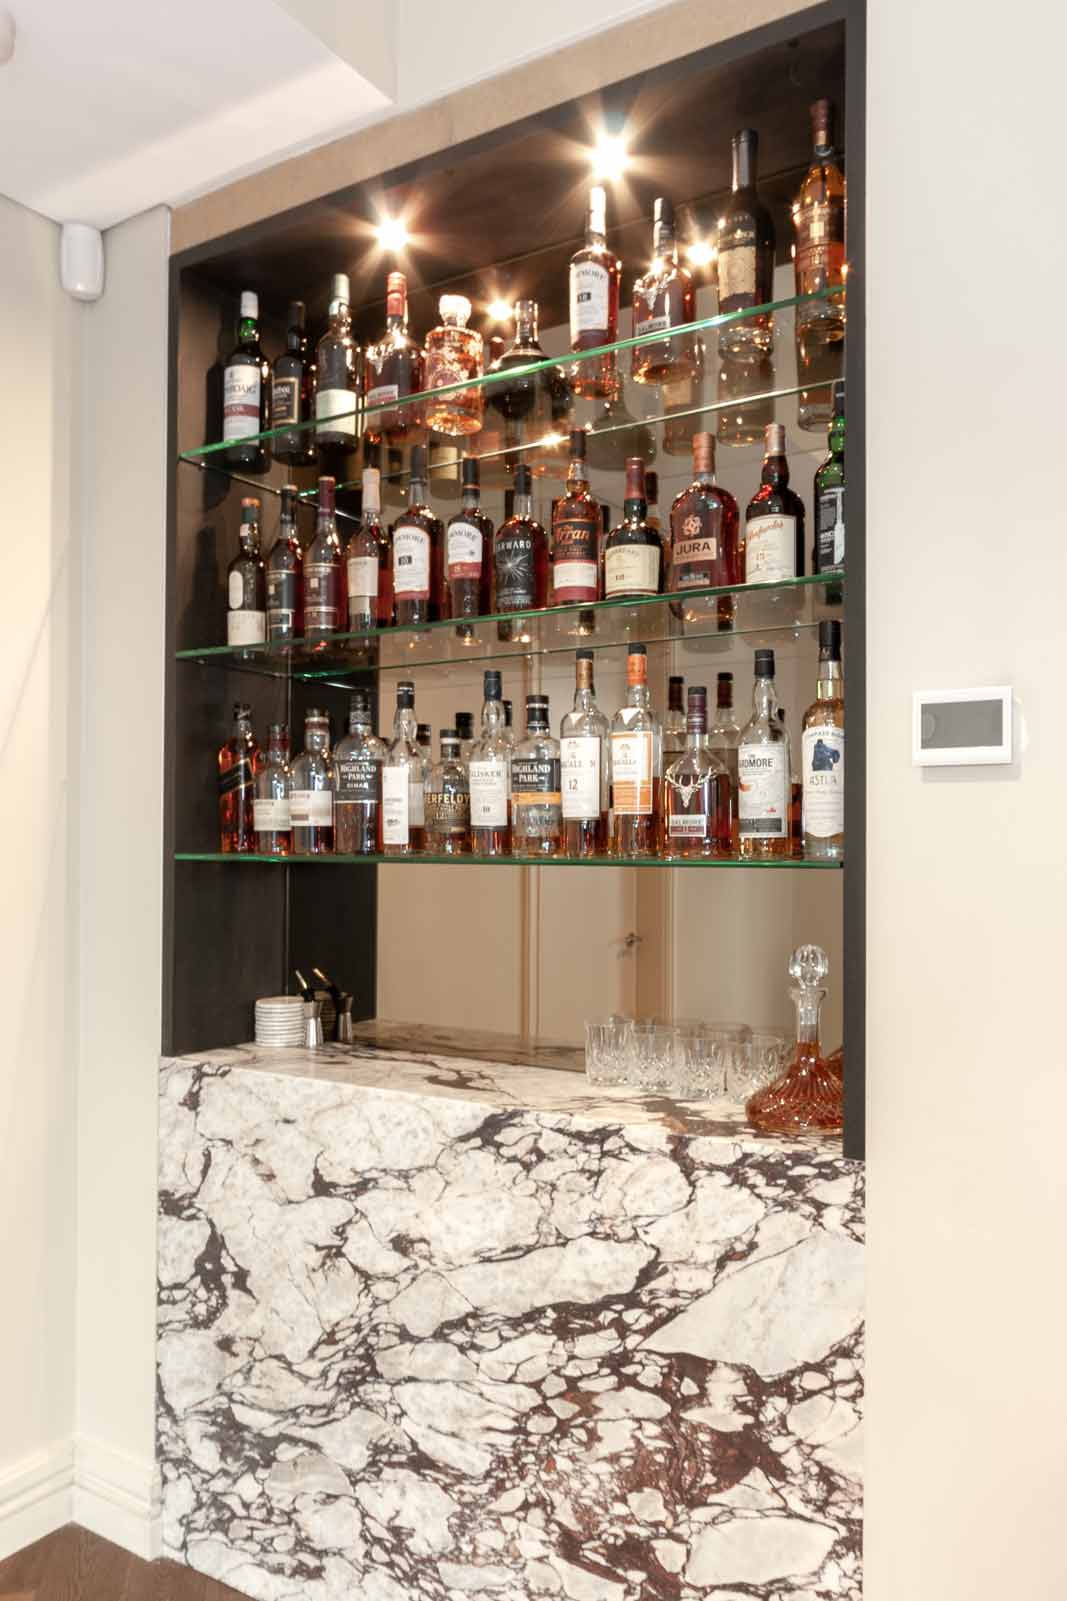 Custom shelving liquor cabinet design with natural stone counter and glass shelves